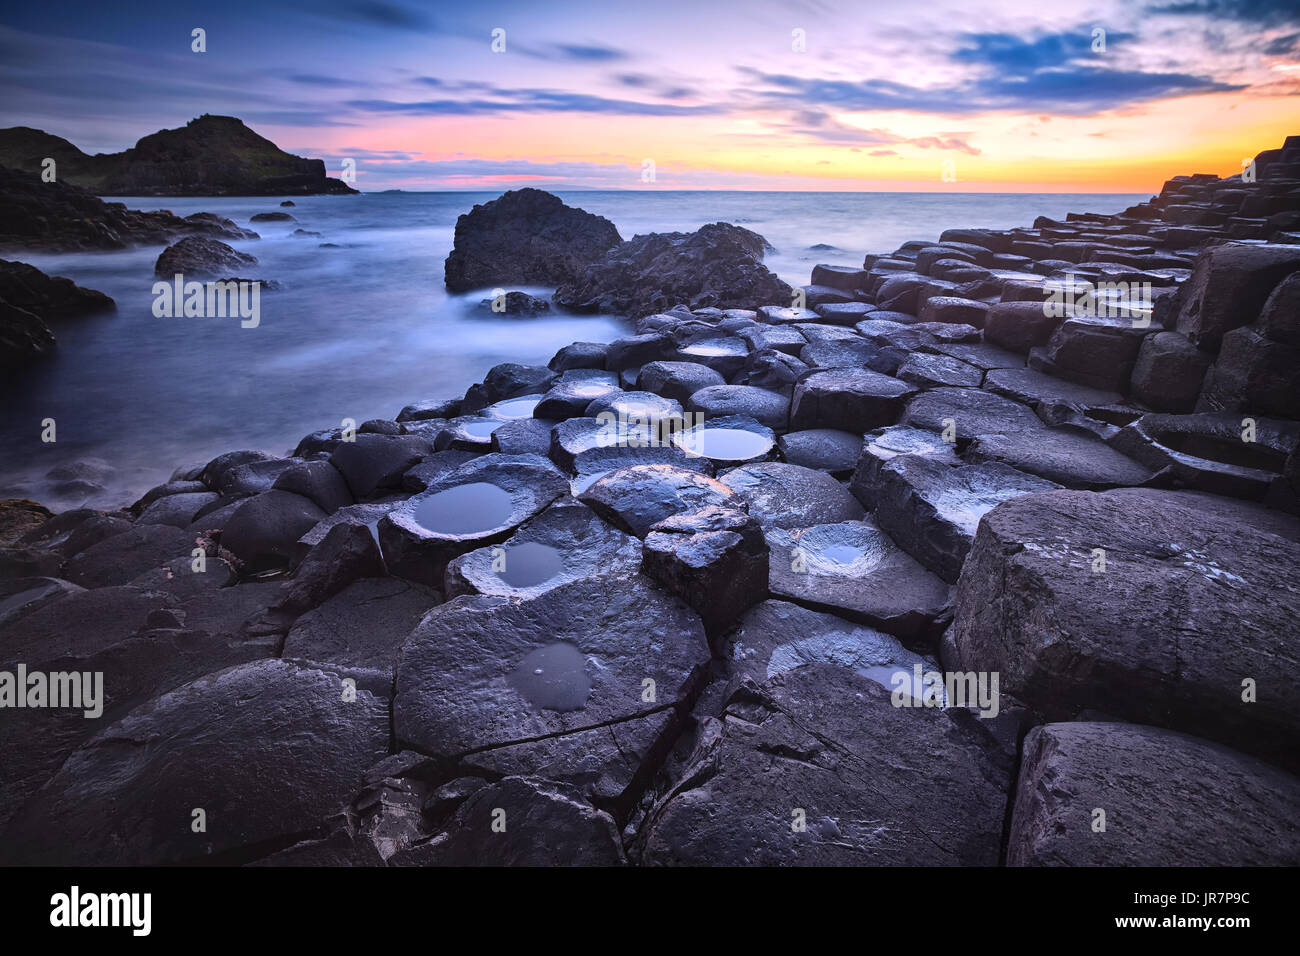 Coucher de soleil sur la formation des roches basaltiques Giant's Causeway, Port Ganny Bay et Great Stookan, comté d'Antrim, en Irlande du Nord, Royaume-Uni Photo Stock